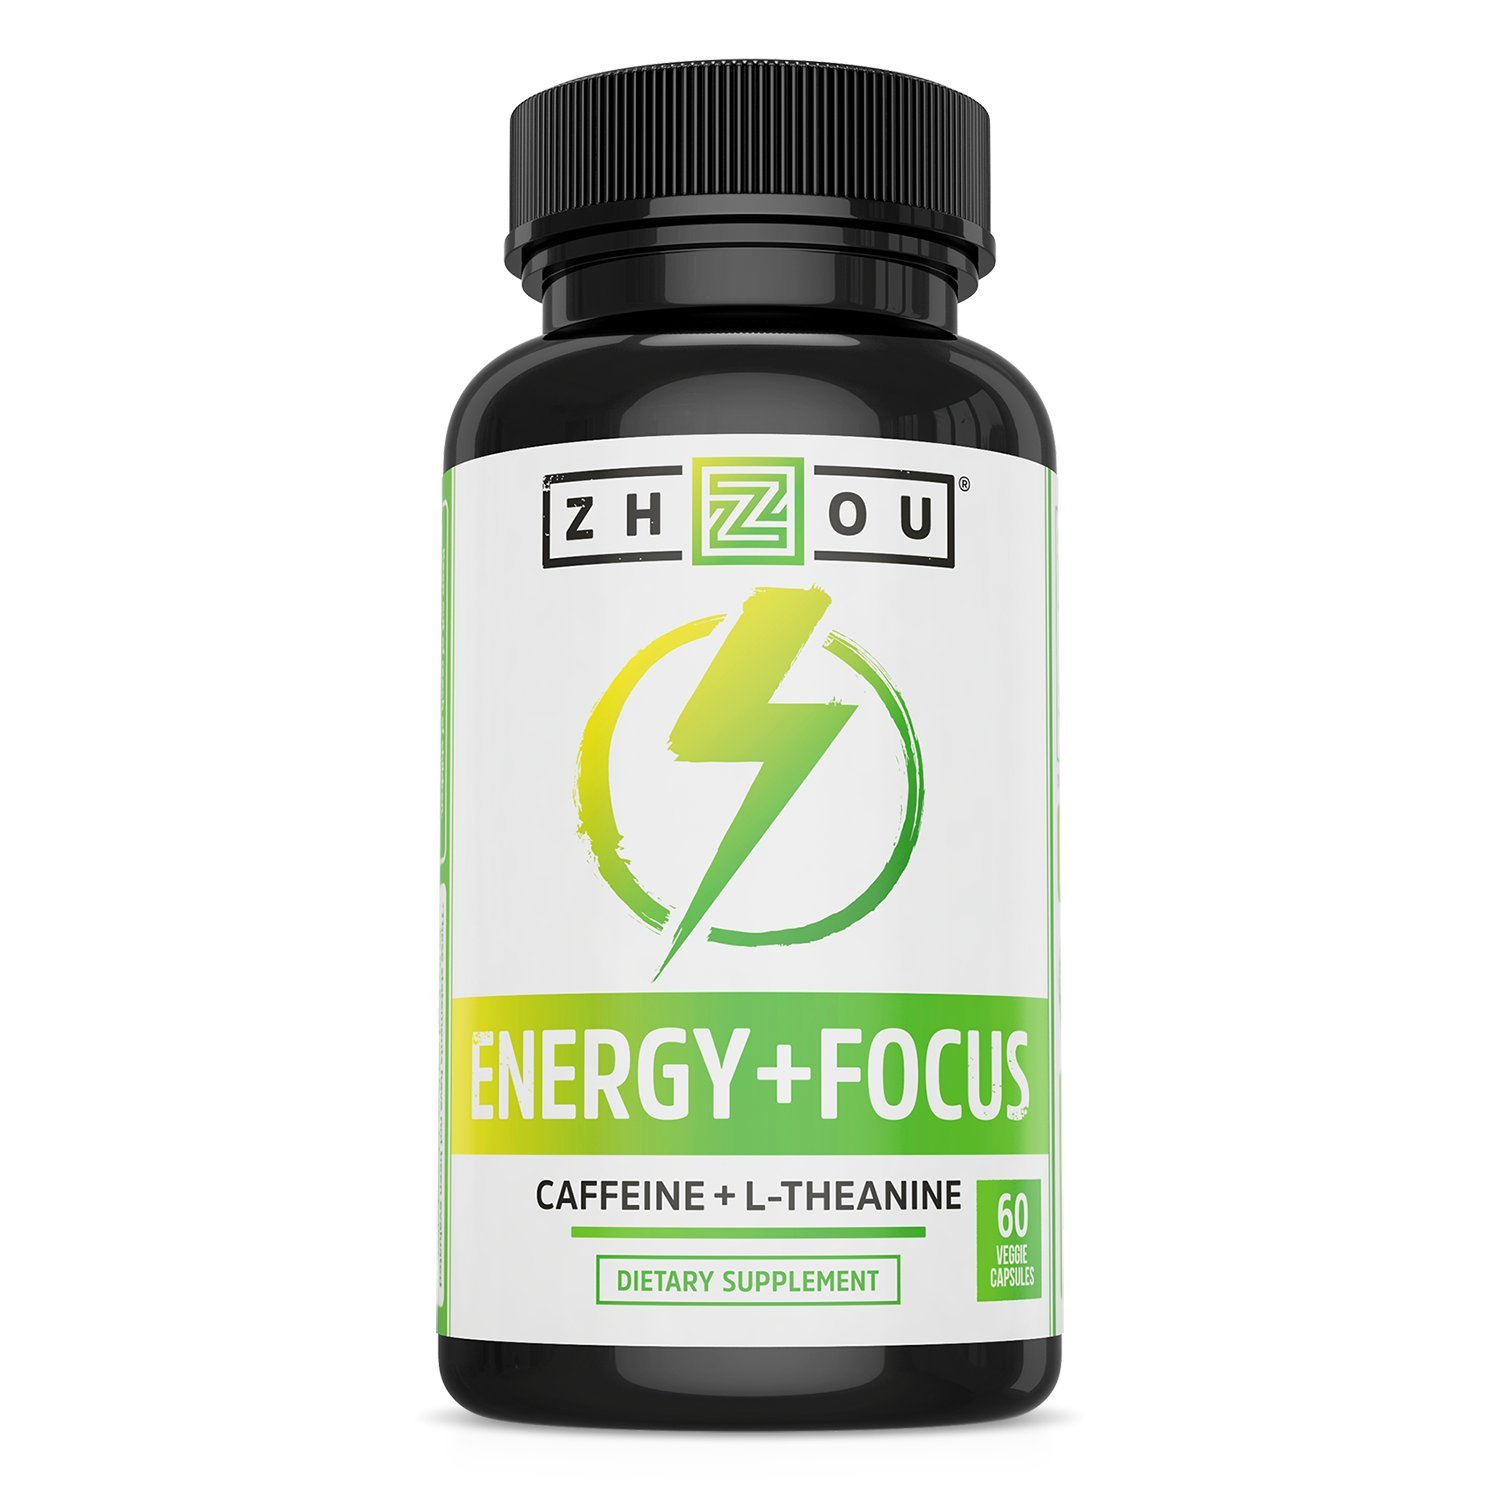 Caffeine with L-Theanine for Smooth Energy & Focus - Focused Energy for Your Mind & Body - No Crash ▫ No Jitters - #1 Nootropic Stack for Cognitive Performance - Veggie Capsules